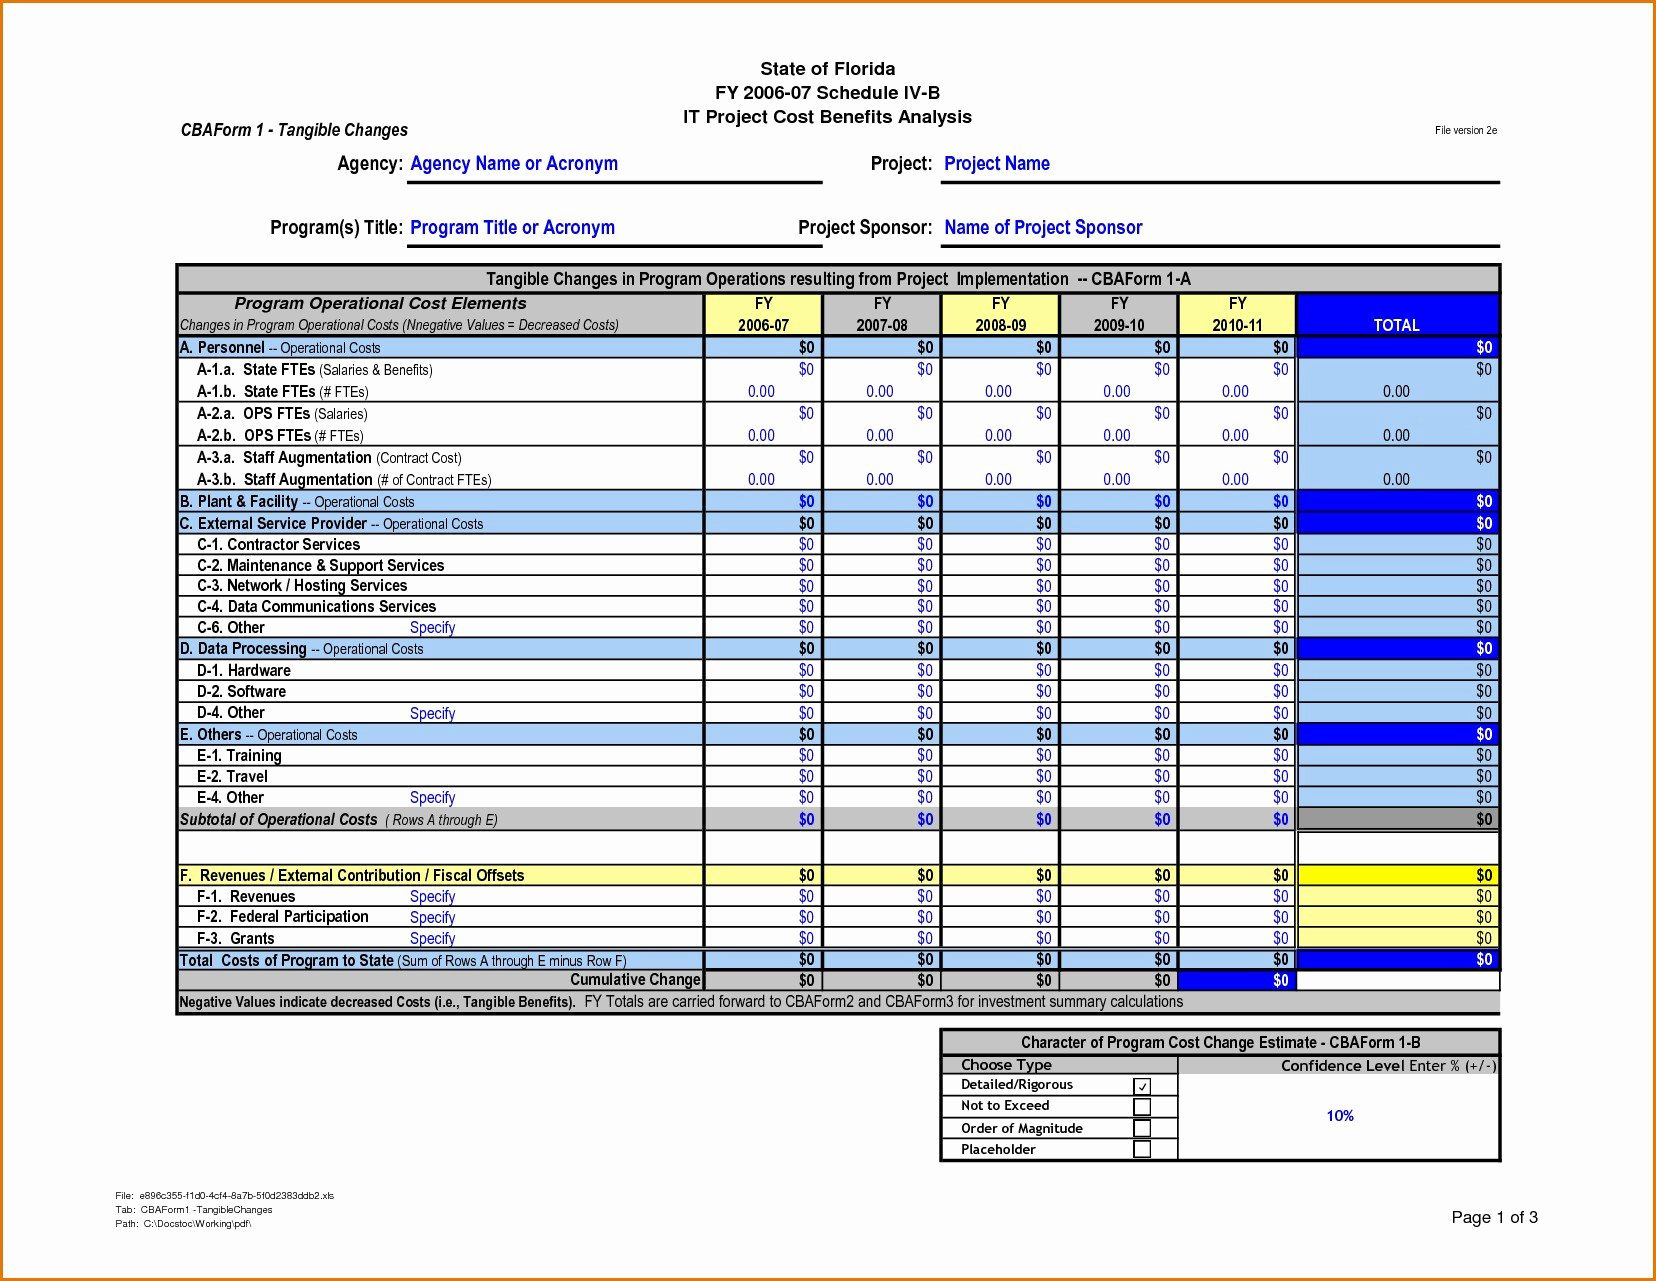 Cost Benefit Analysis Template Excel Microsoft New Cost Benefit Analysis Template In Excel – Guatemalago